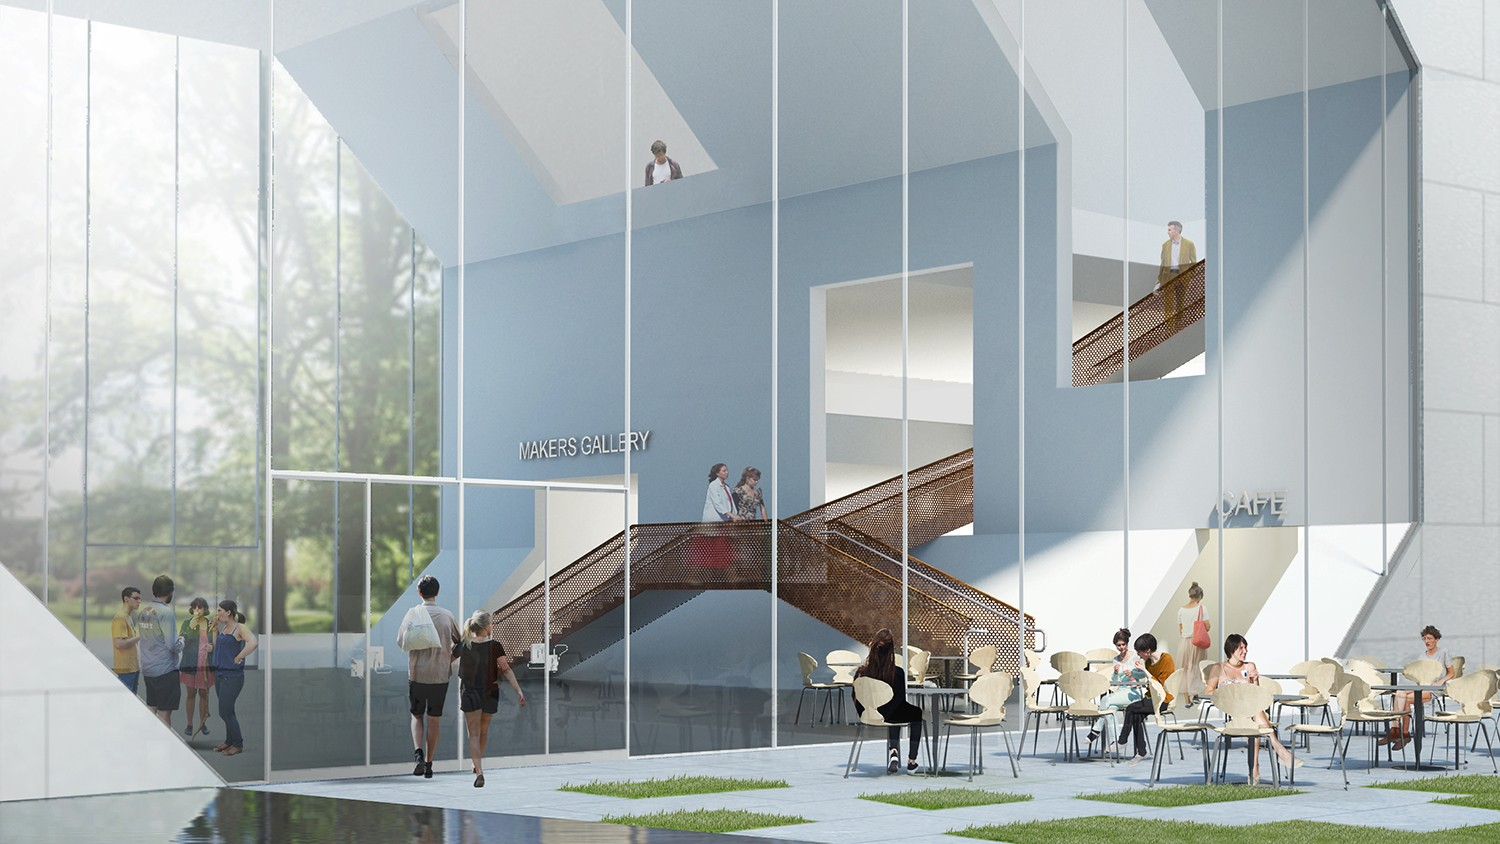 https://s3.us-east-2.amazonaws.com/steven-holl/uploads/projects/project-images/StevenHollArchitects_UCD_FINAL2_WH.jpg